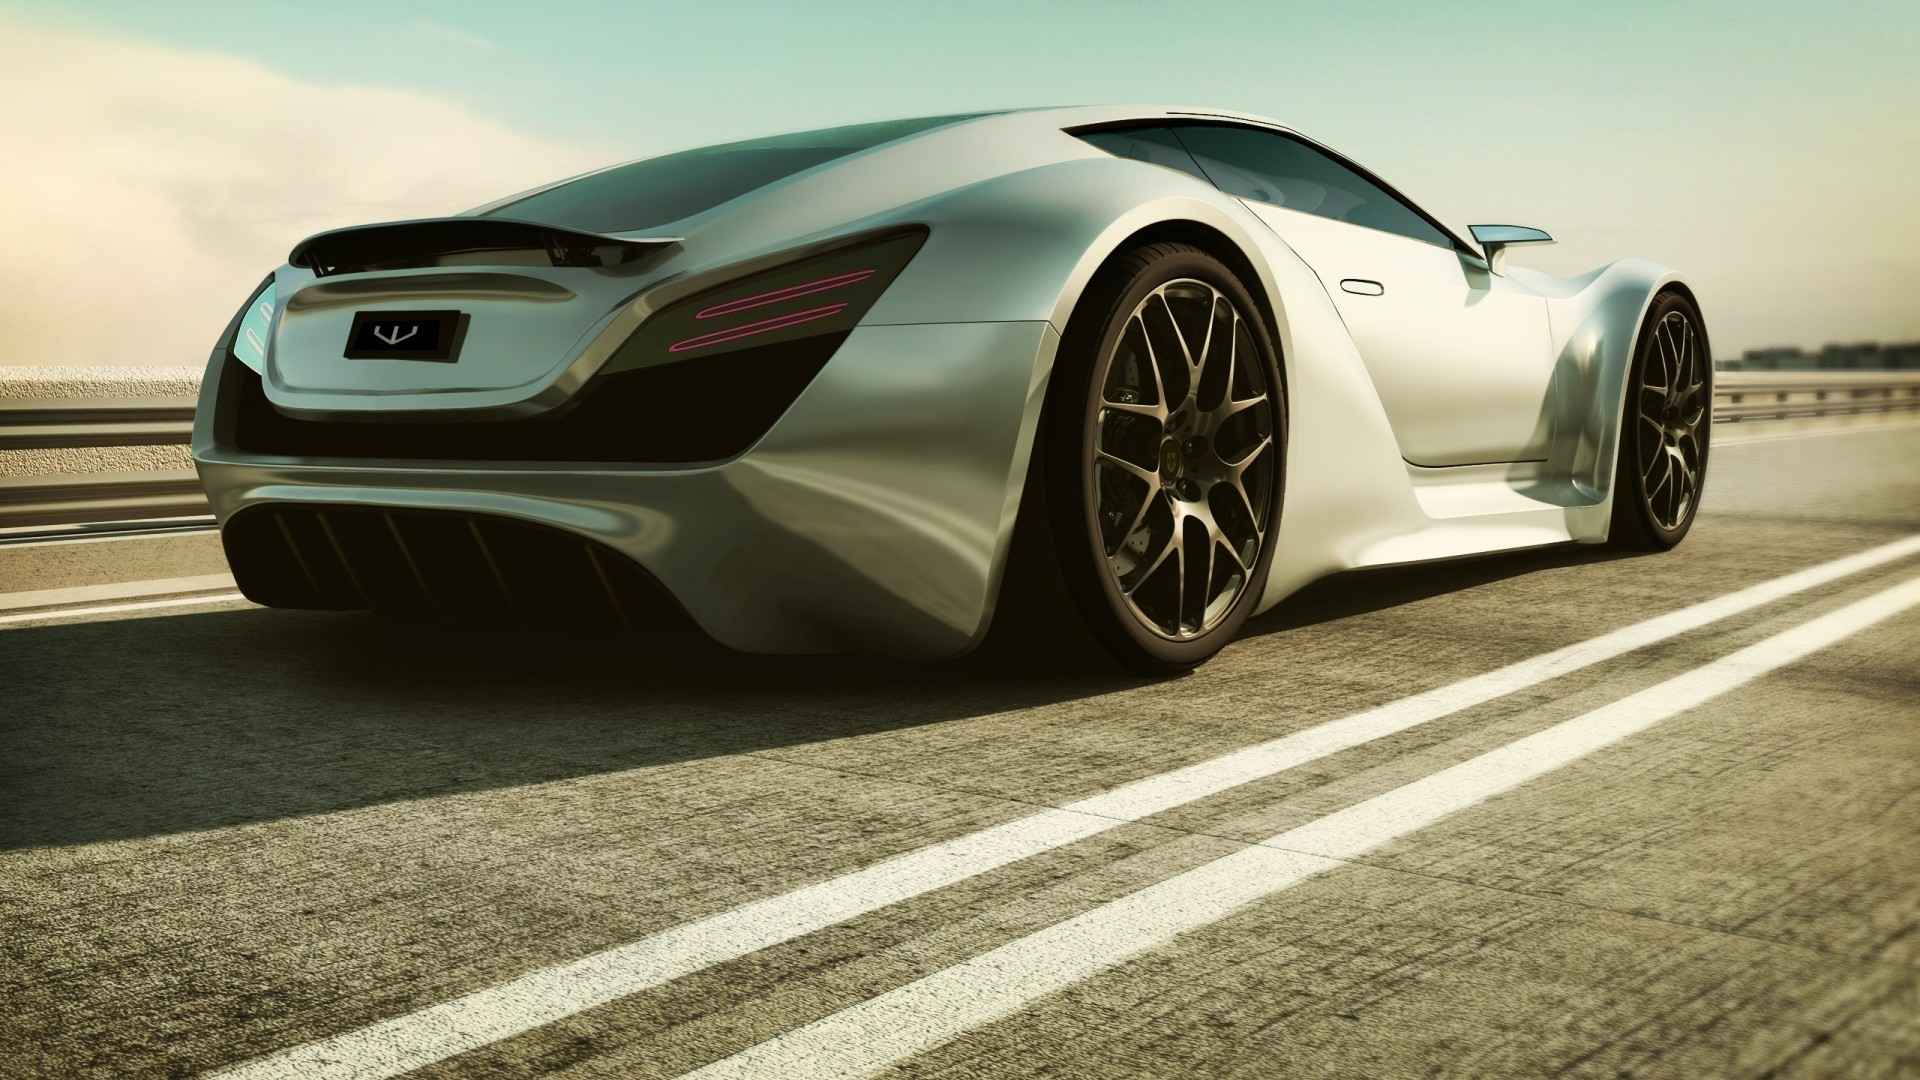 Sports Car Iphone Wallpapers For Free